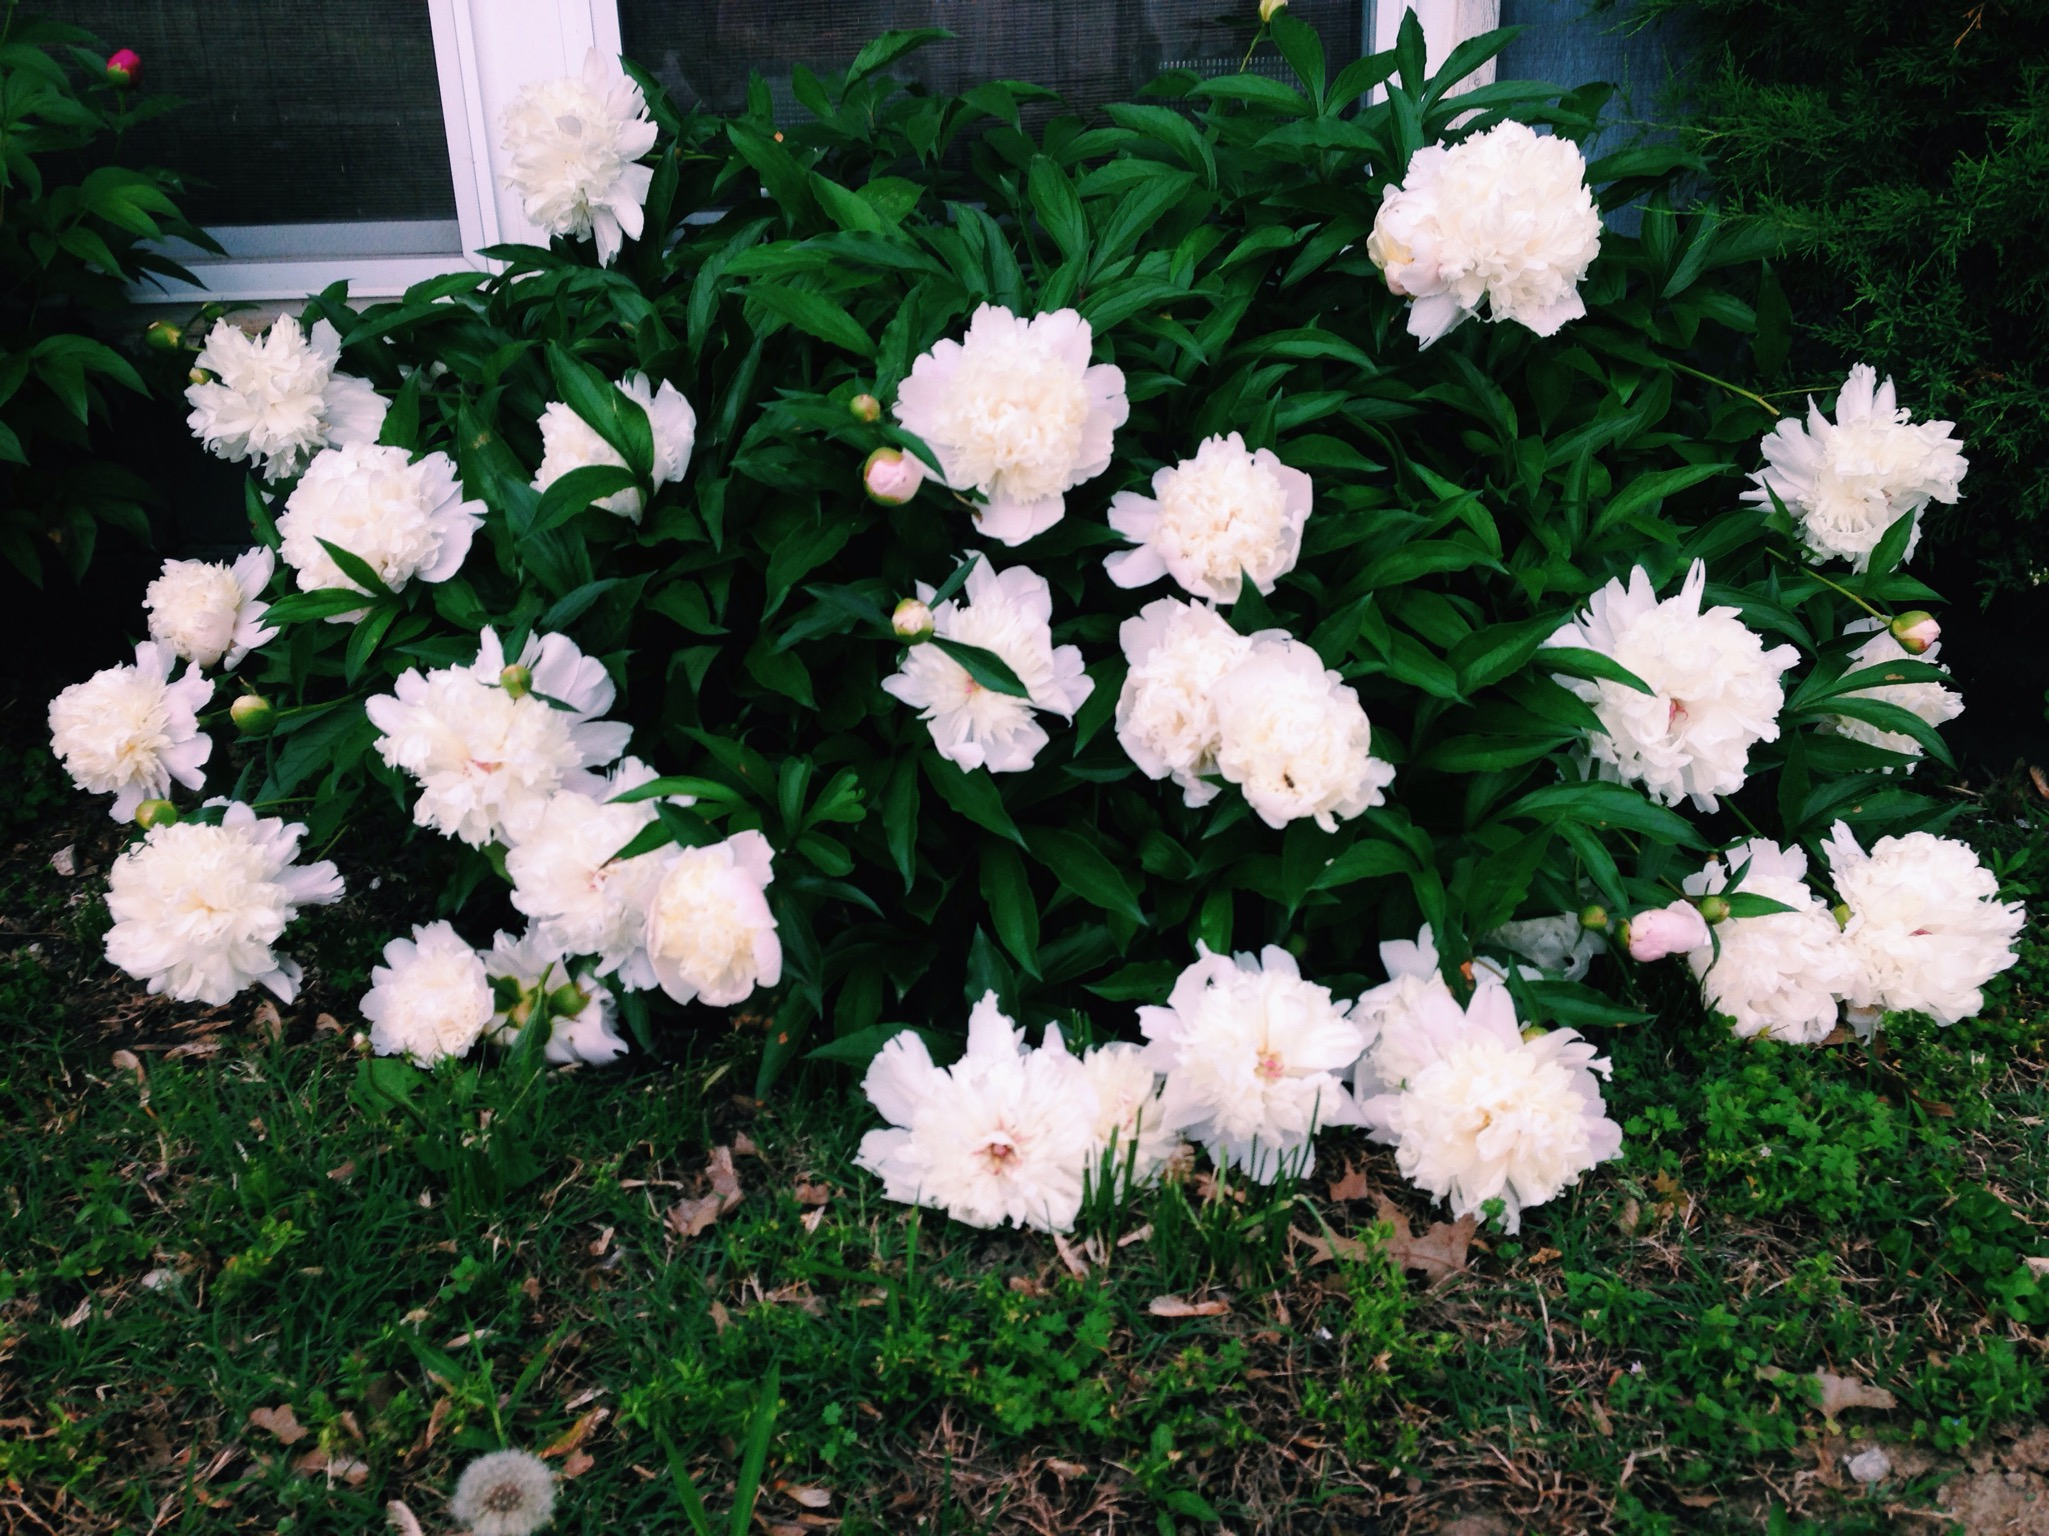 The peony bushes at my Grandma's house have my heart!